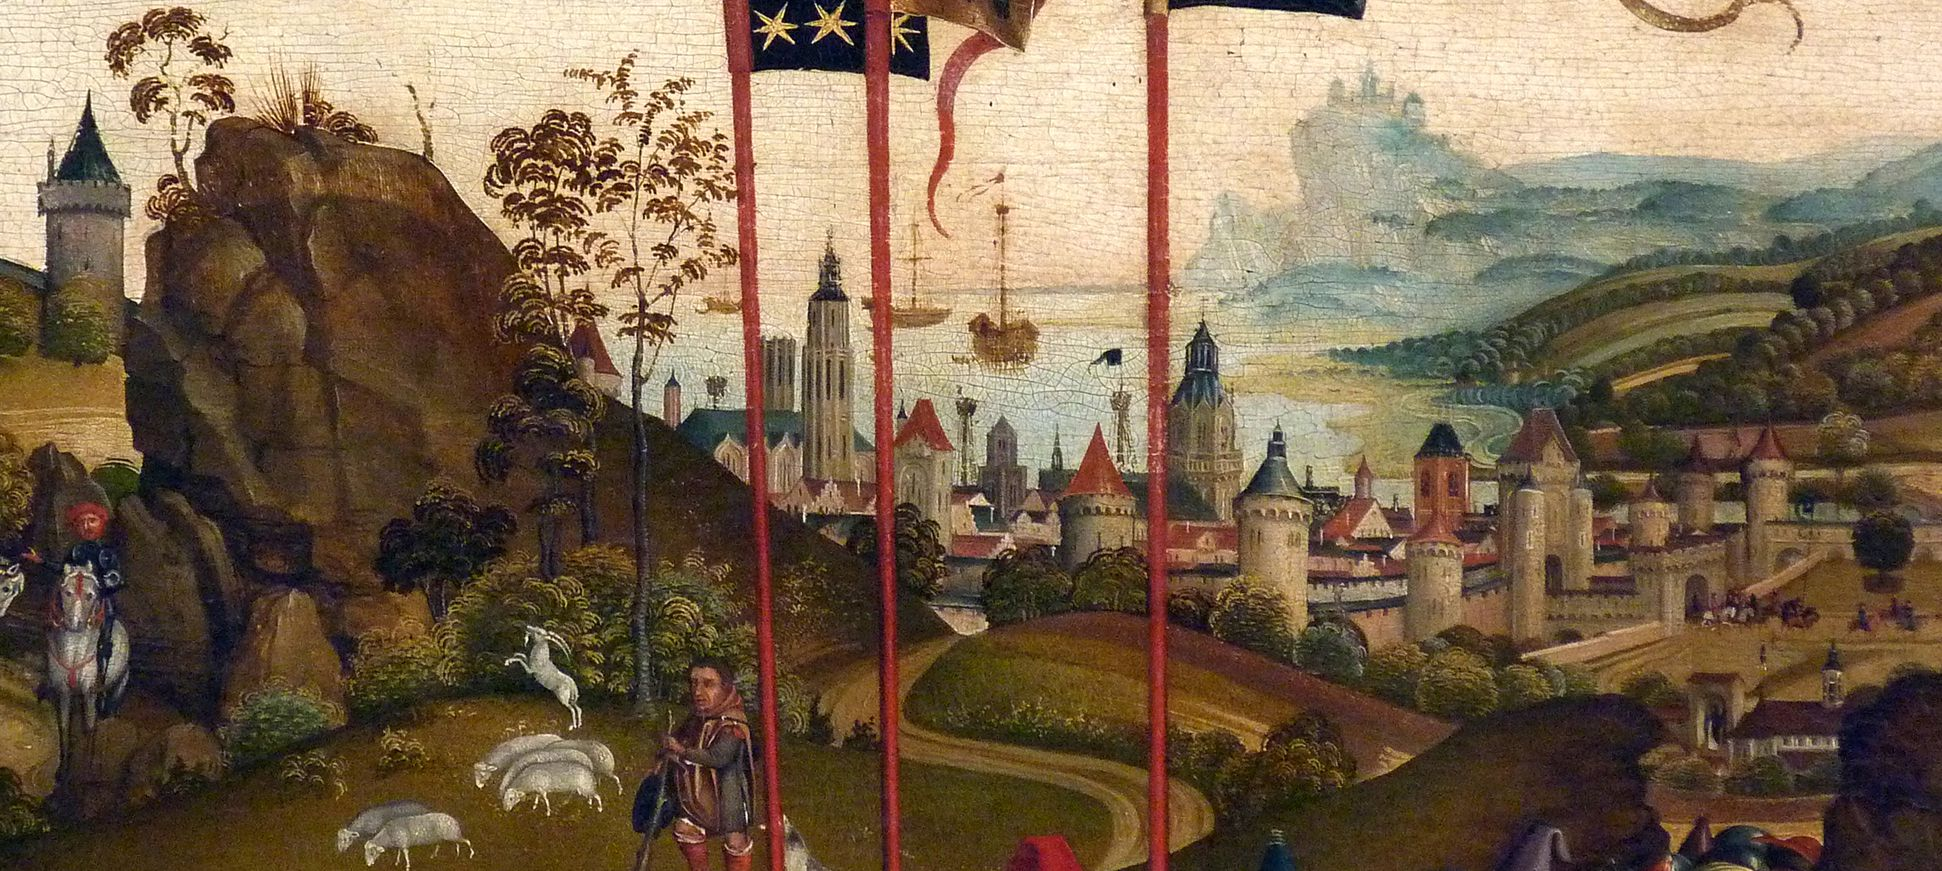 Altar of the Three Kings Background with the city in the countryside – following the ideal the countryside is not typically Franconian but Dutch